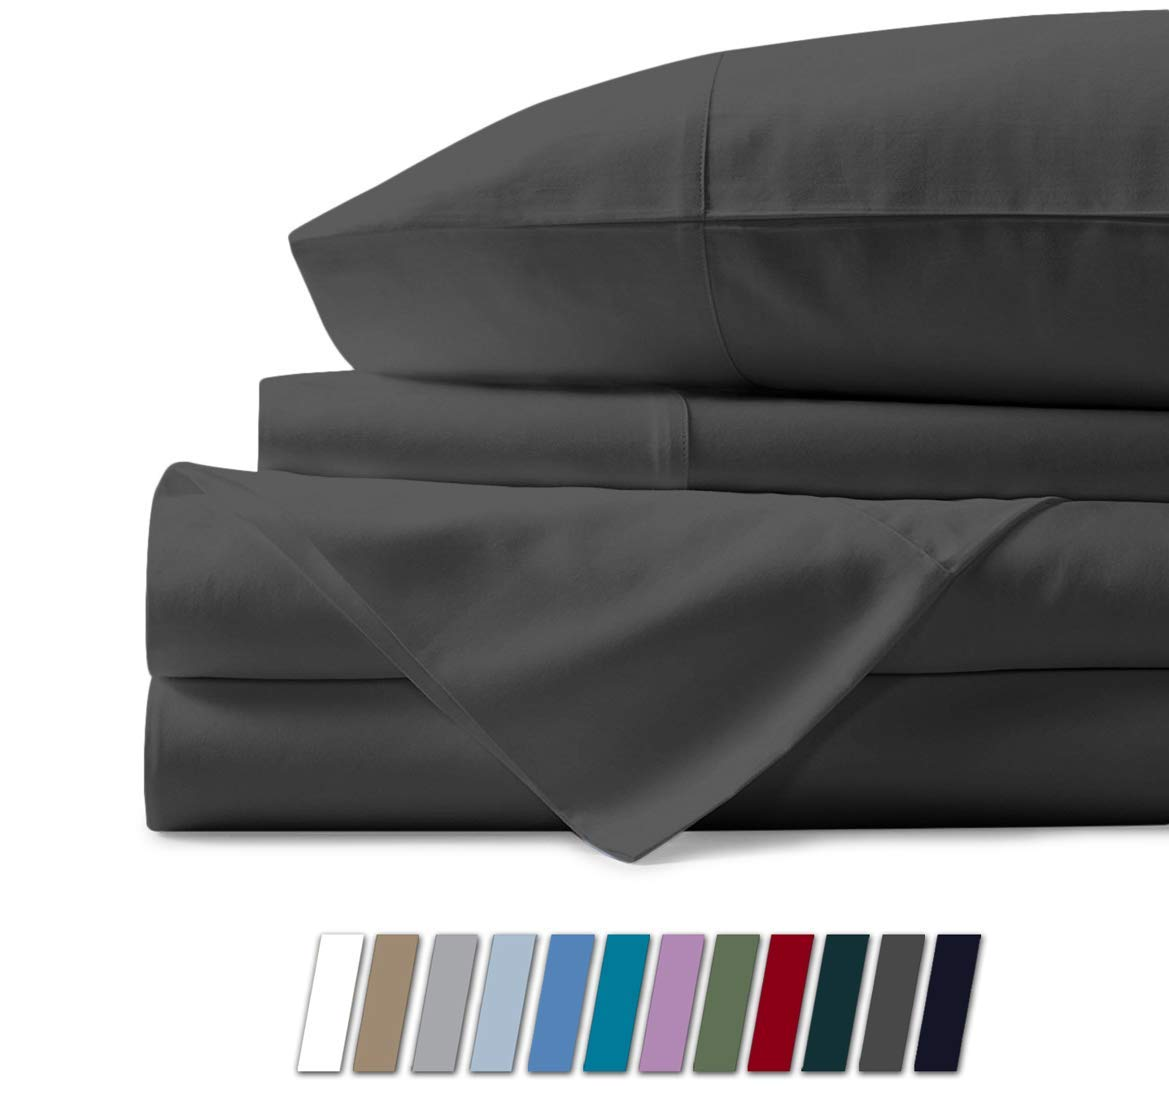 Mayfair Linen 100% Egyptian Cotton Sheets, Dark Grey Queen Sheets Set, 800 Thread Count Long Staple Cotton, Sateen Weave for Soft and Silky Feel, Fits Mattress Upto 18'' DEEP Pocket